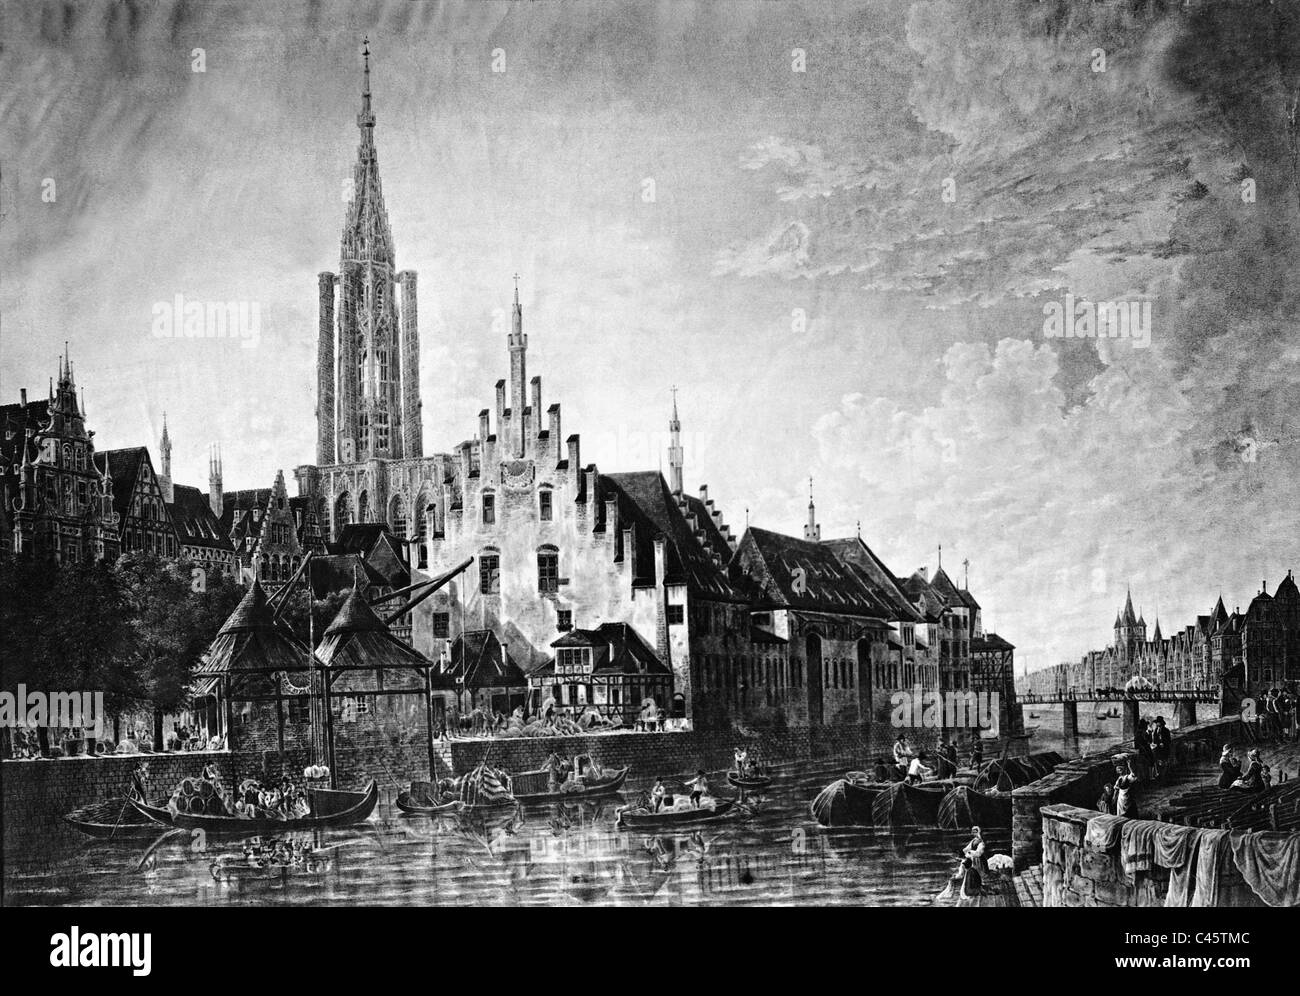 Strasbourg in the 19th century - Stock Image